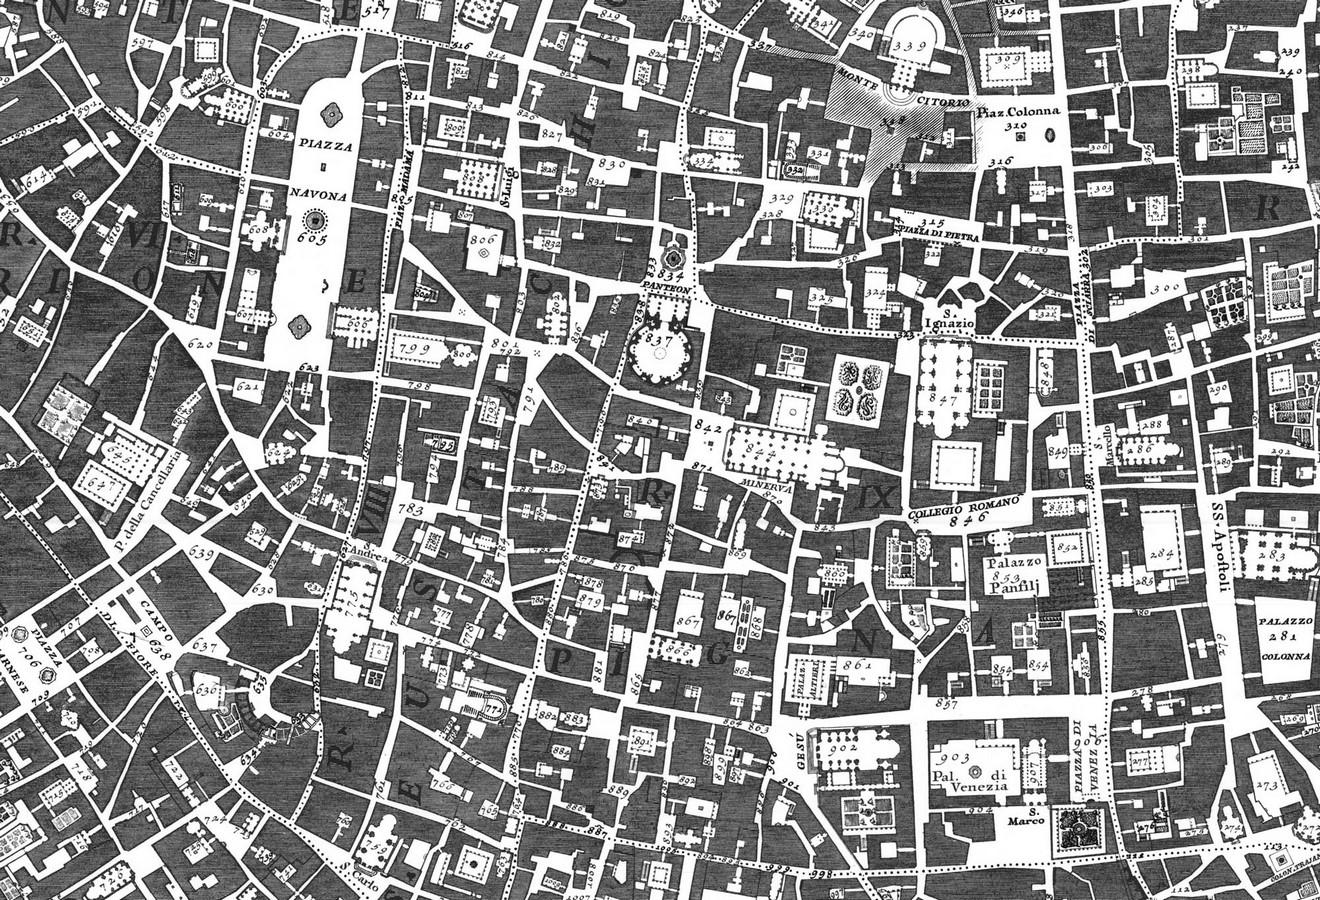 What are Incidental spaces and its urban morphology - Sheet2